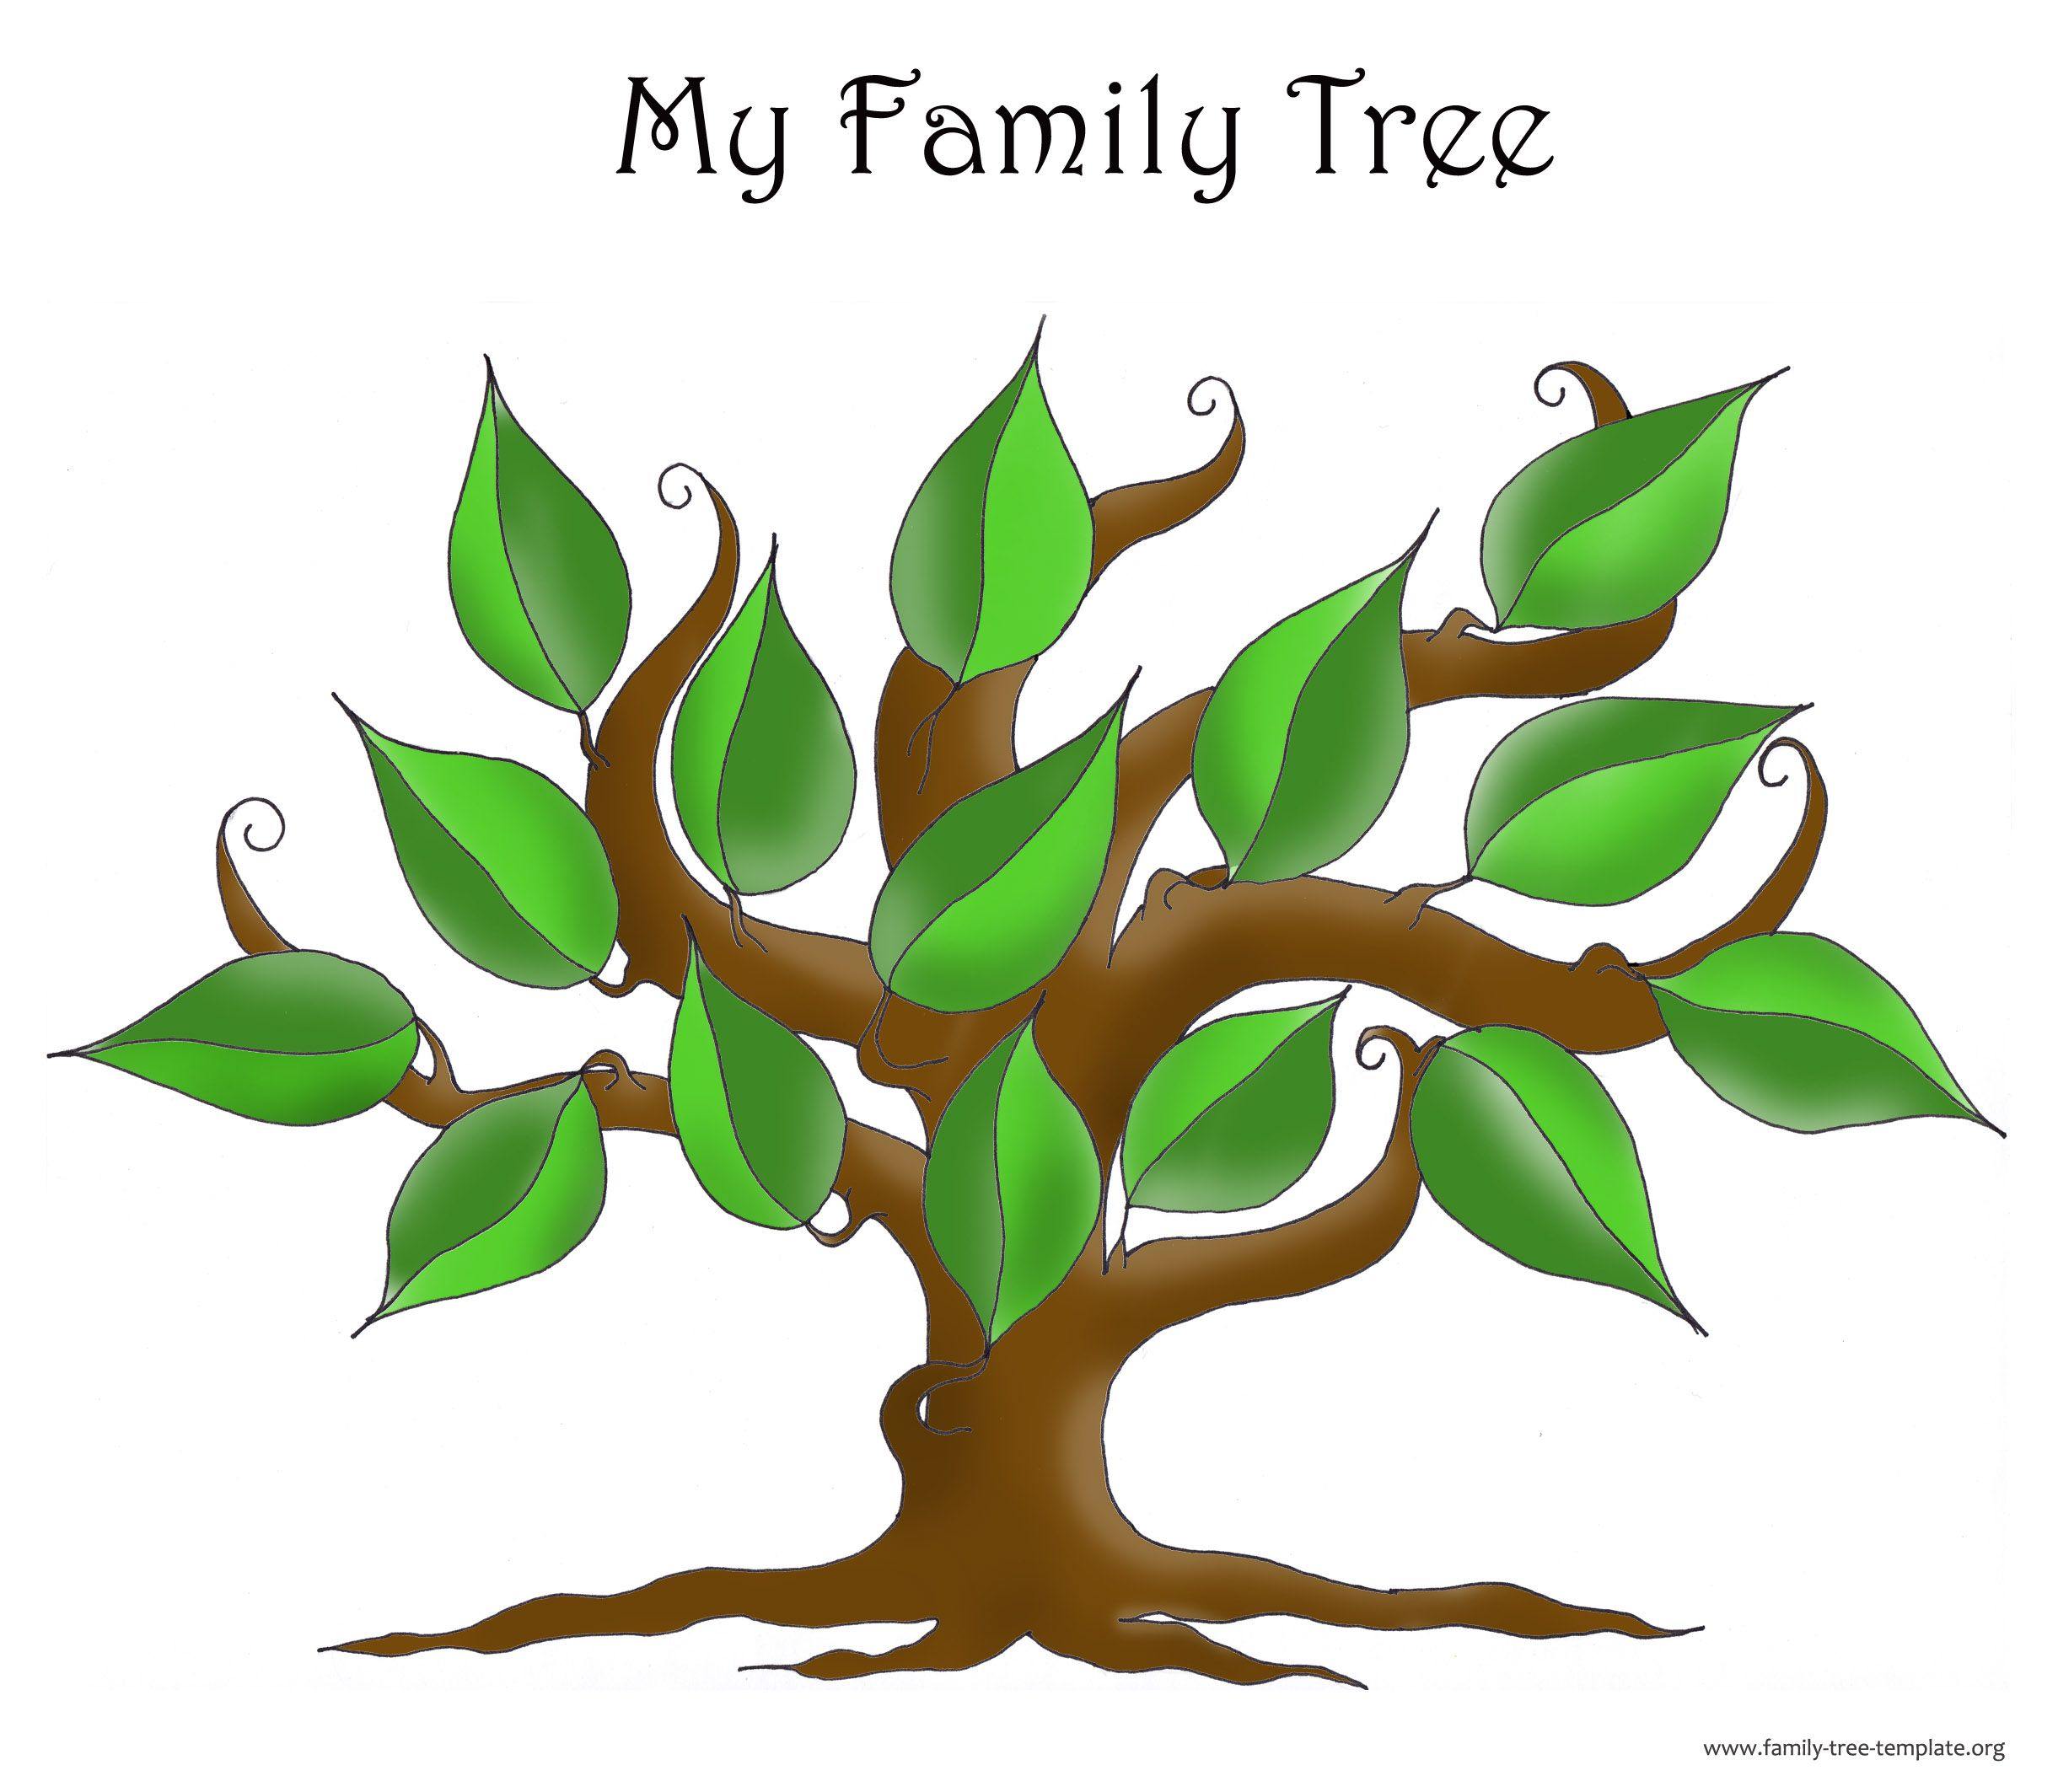 Free Blank Family Tree Template | The Non-Structured Family Tree ...